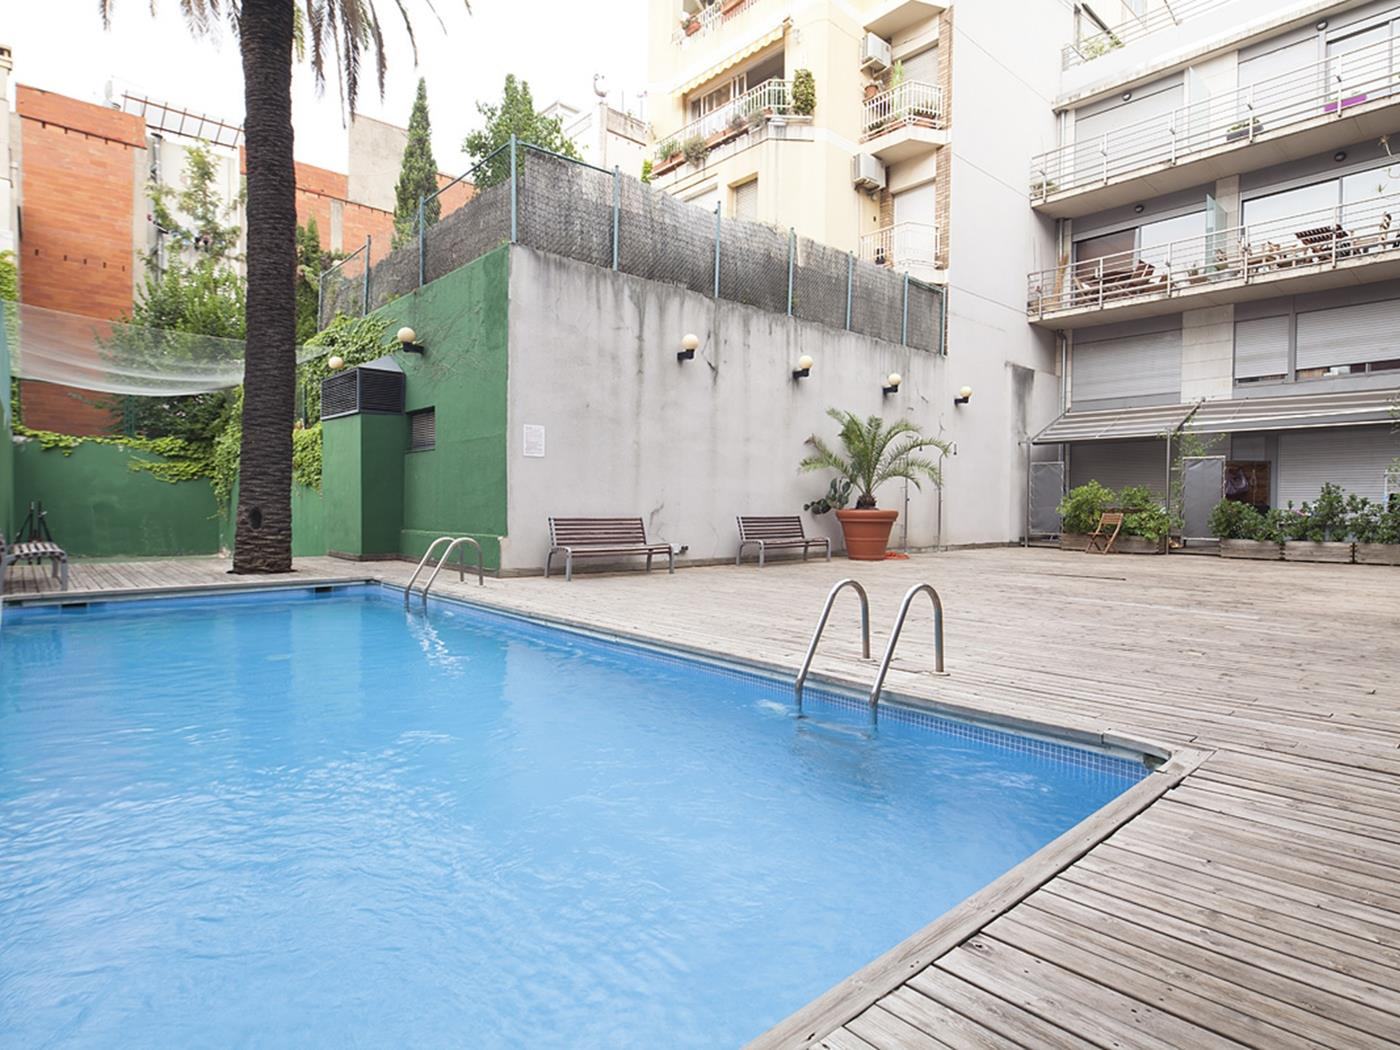 Duplex Apartment in Barcelona with Swimming Pool - My Space Barcelona Apartments